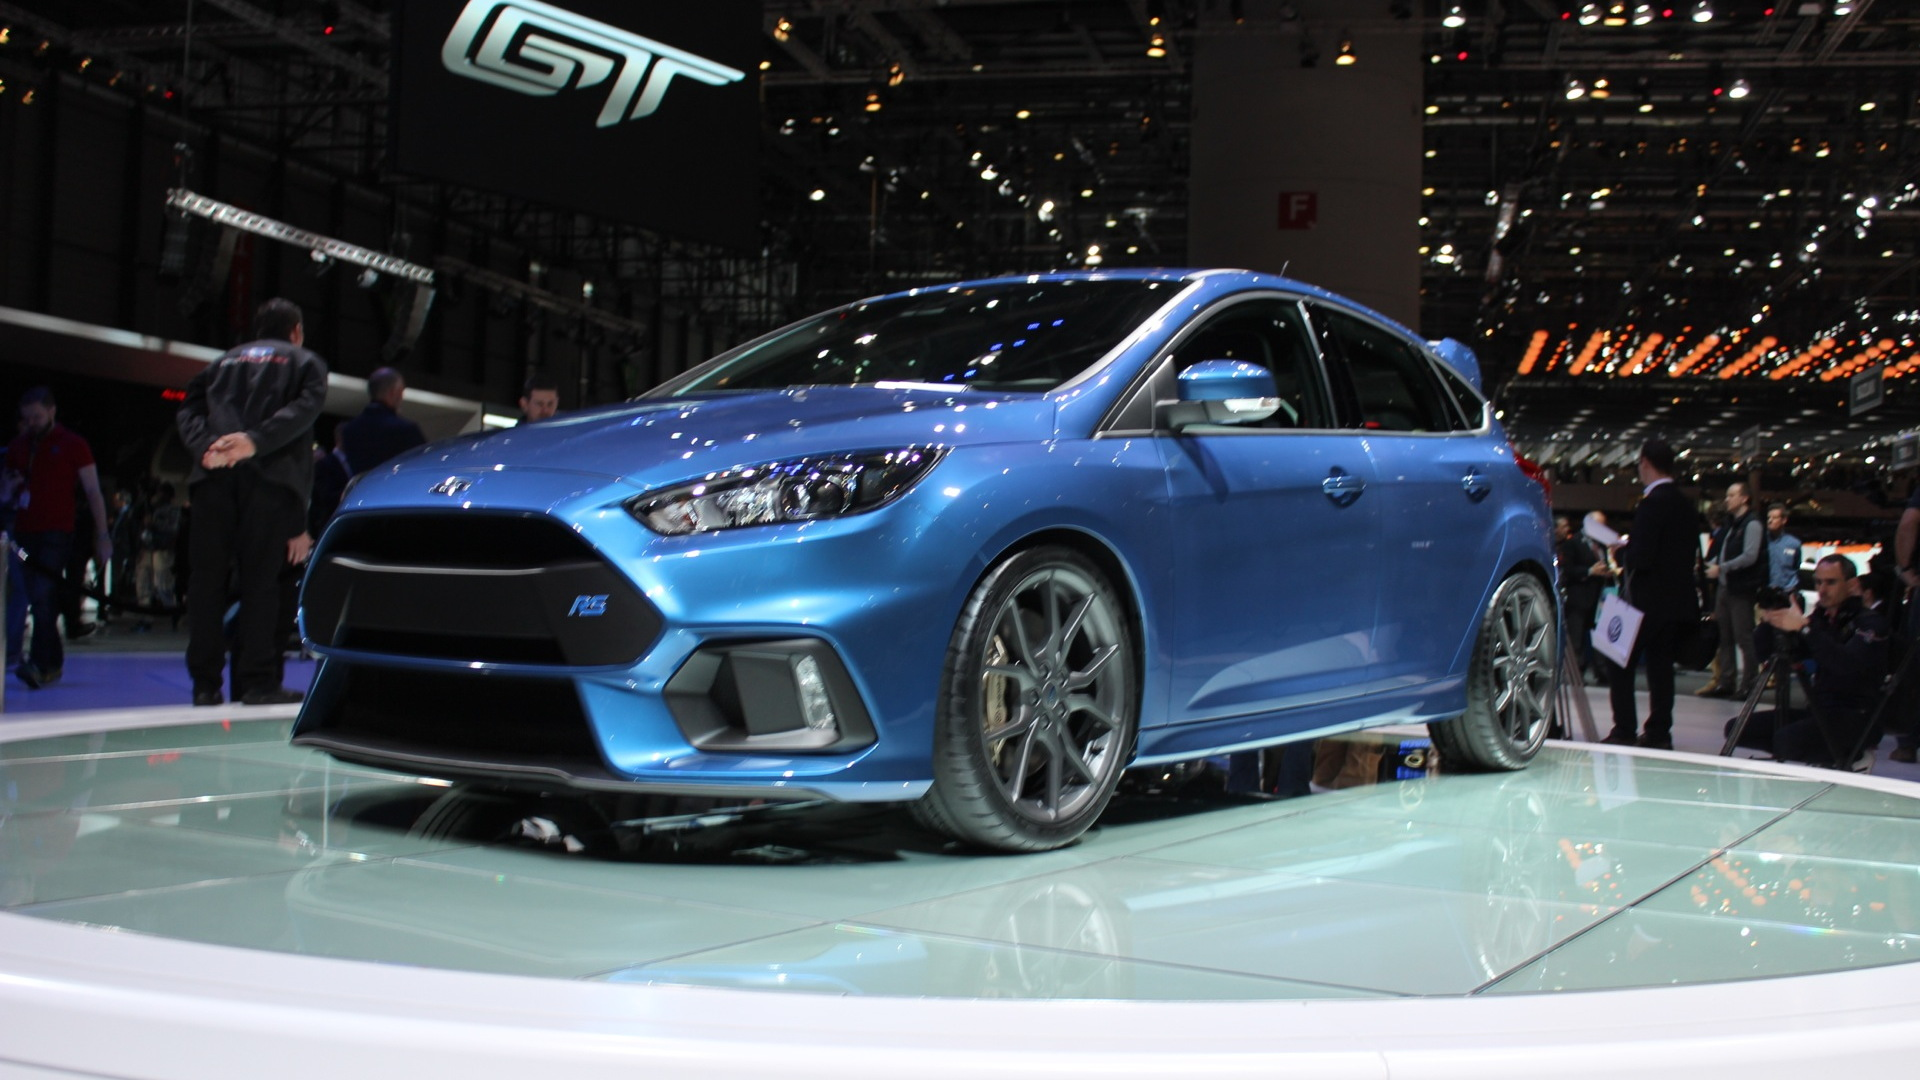 2016 Ford Focus RS  -  2015 Geneva Motor Show live photos